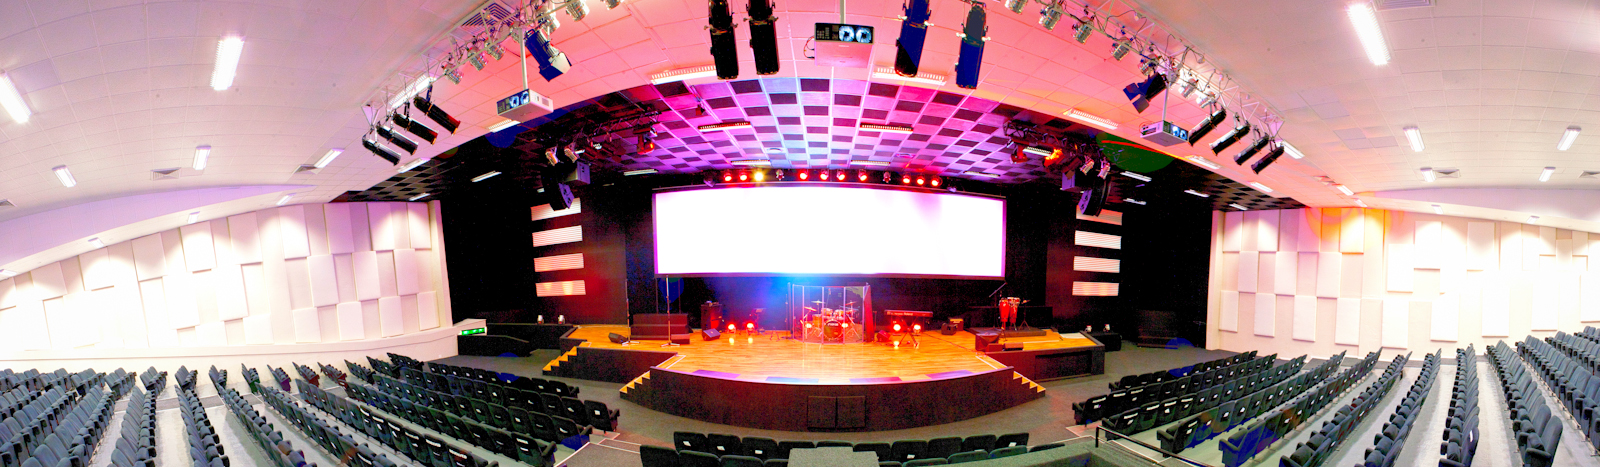 stage_front_pano-lights on